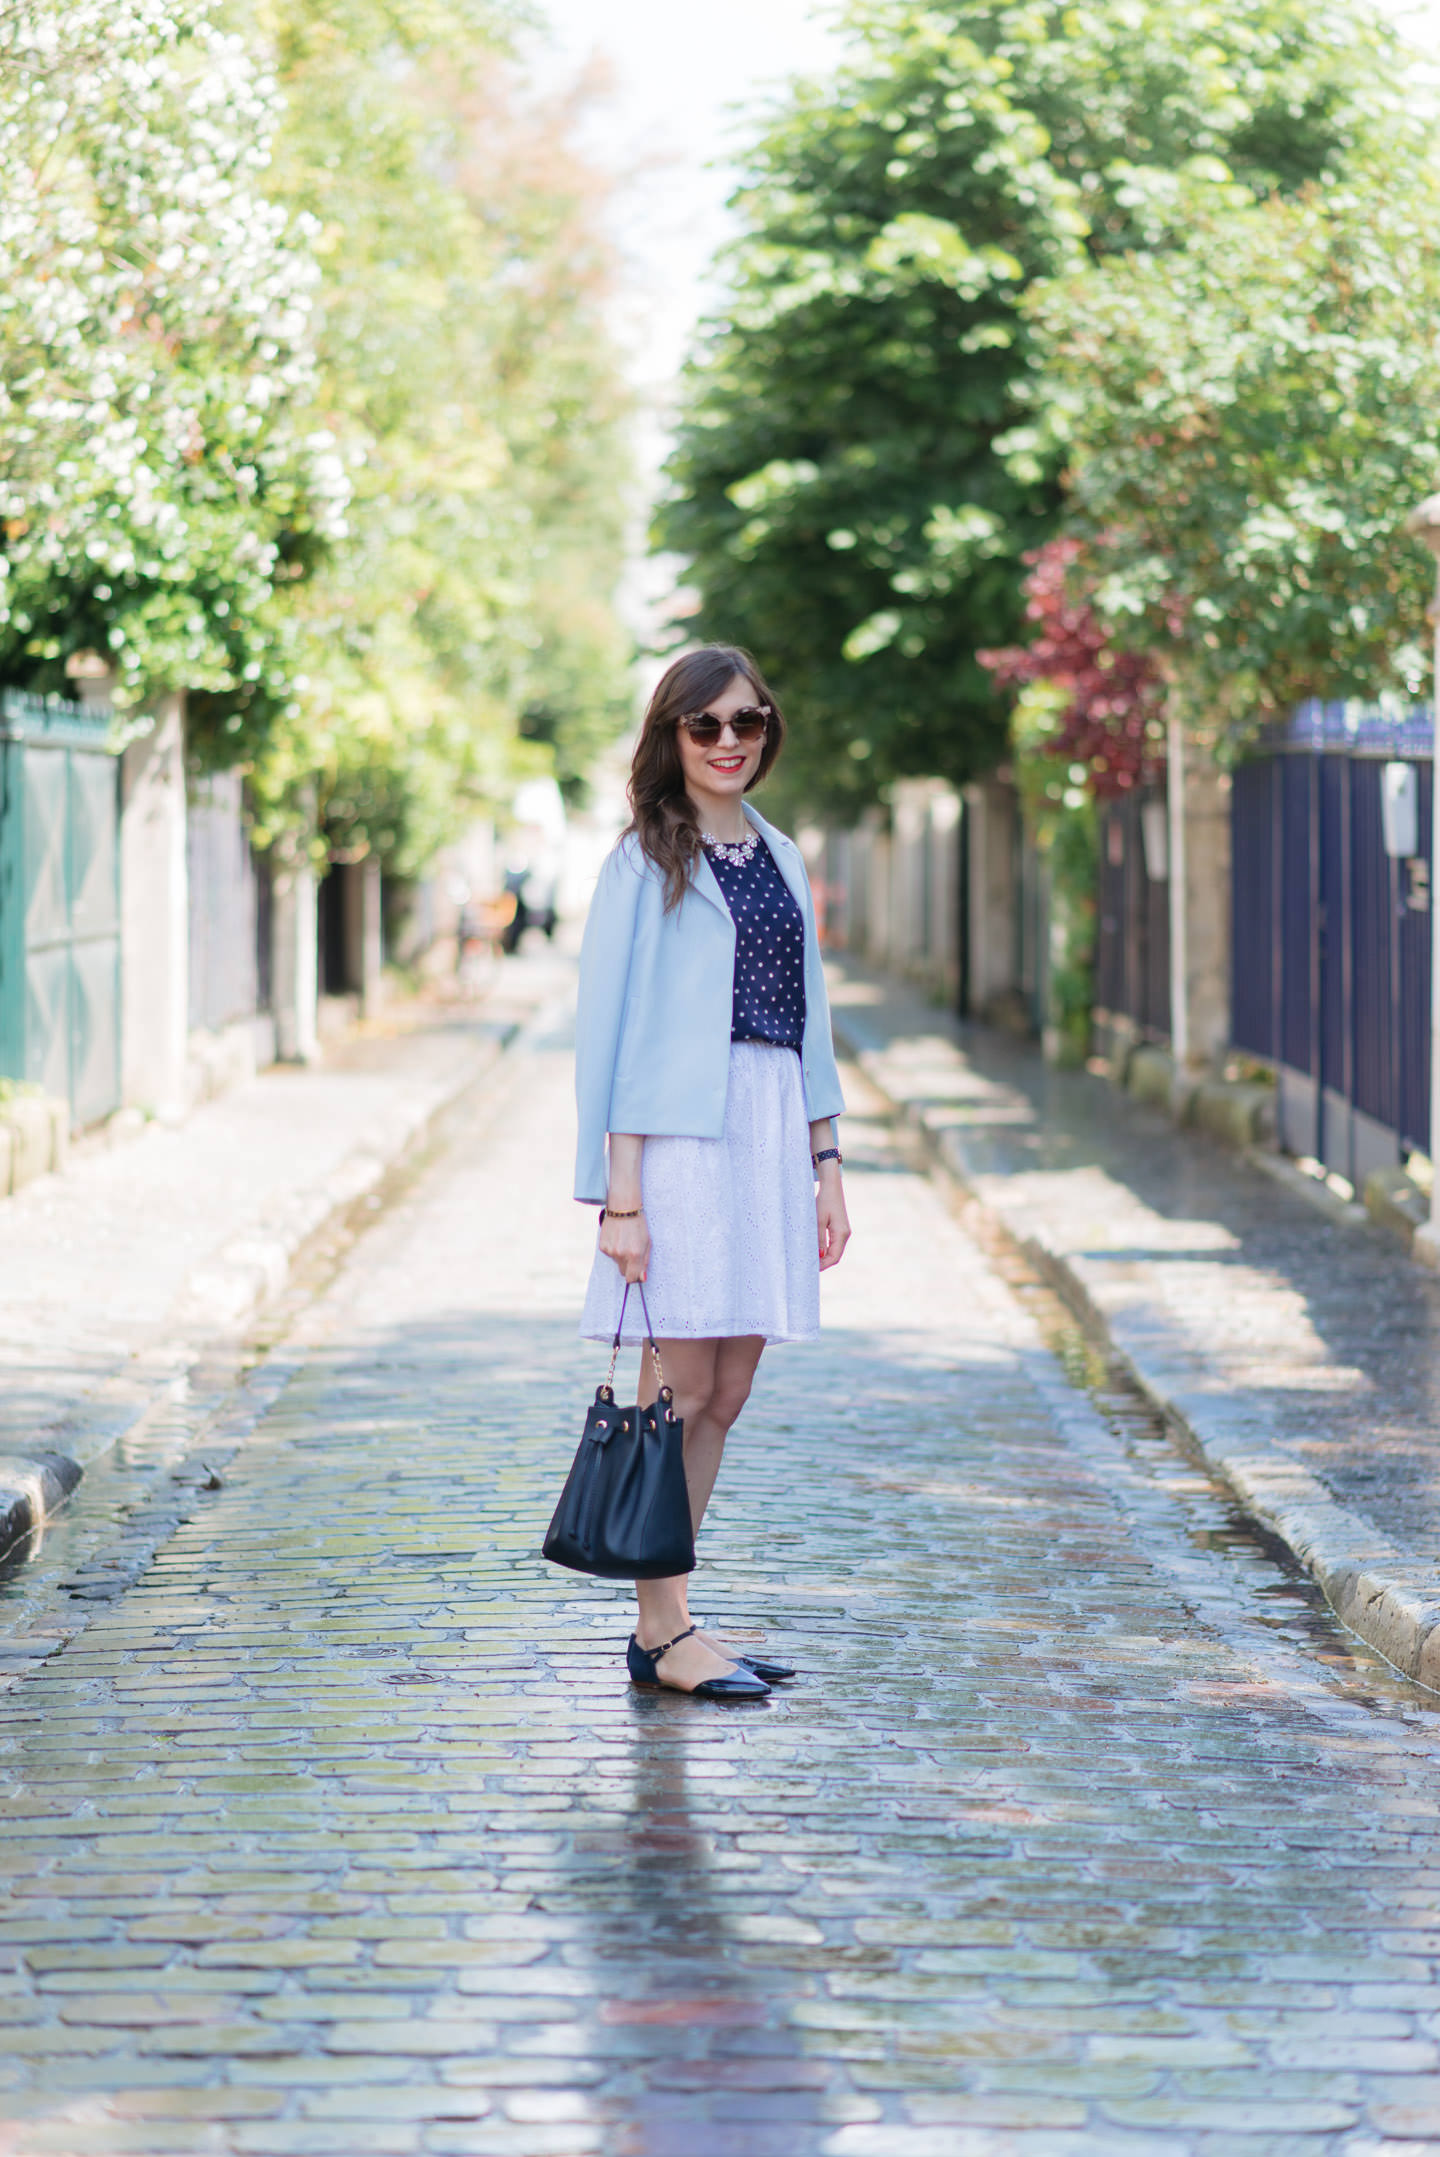 Blog-Mode-And-the-City-Looks-Jean-Louis-David-3-Suisses-7